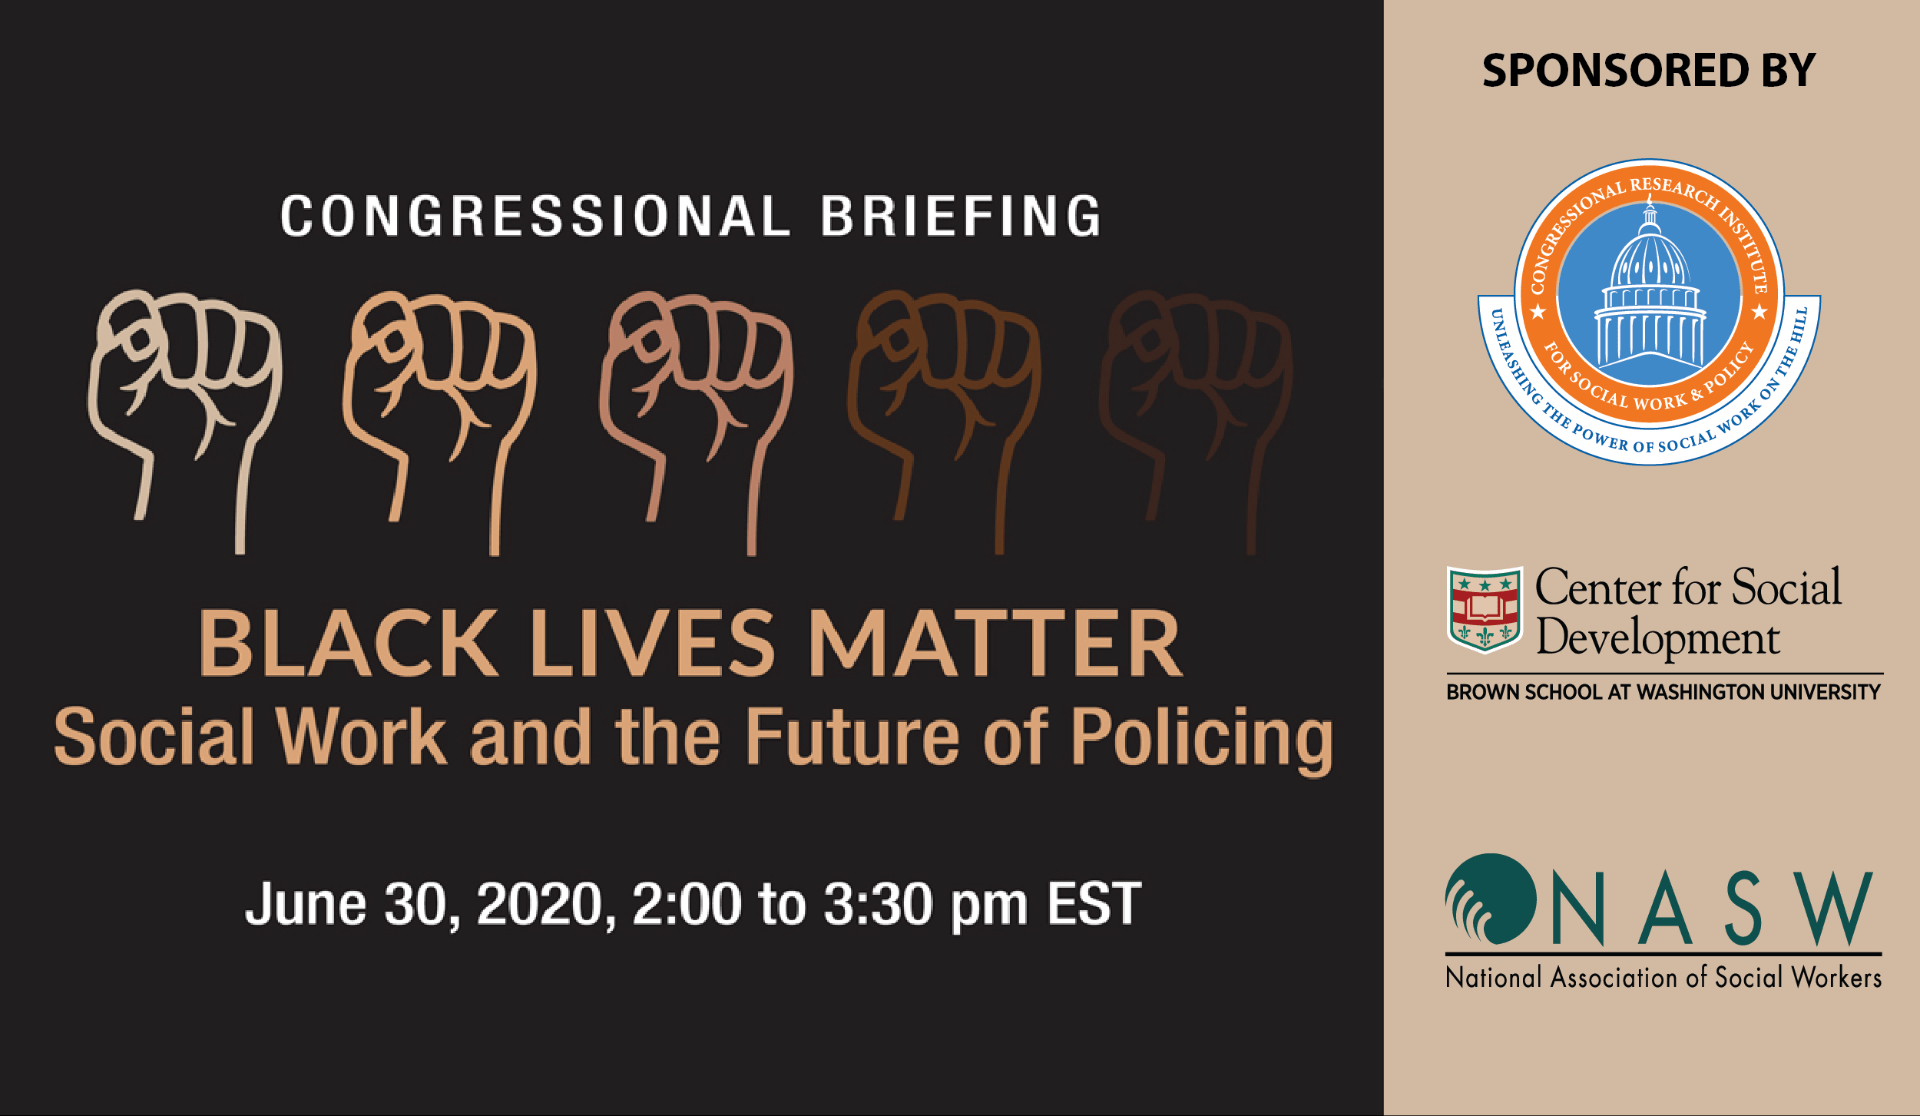 Congressional Briefing – Black Lives Matter: Social Work and the Future of Policing